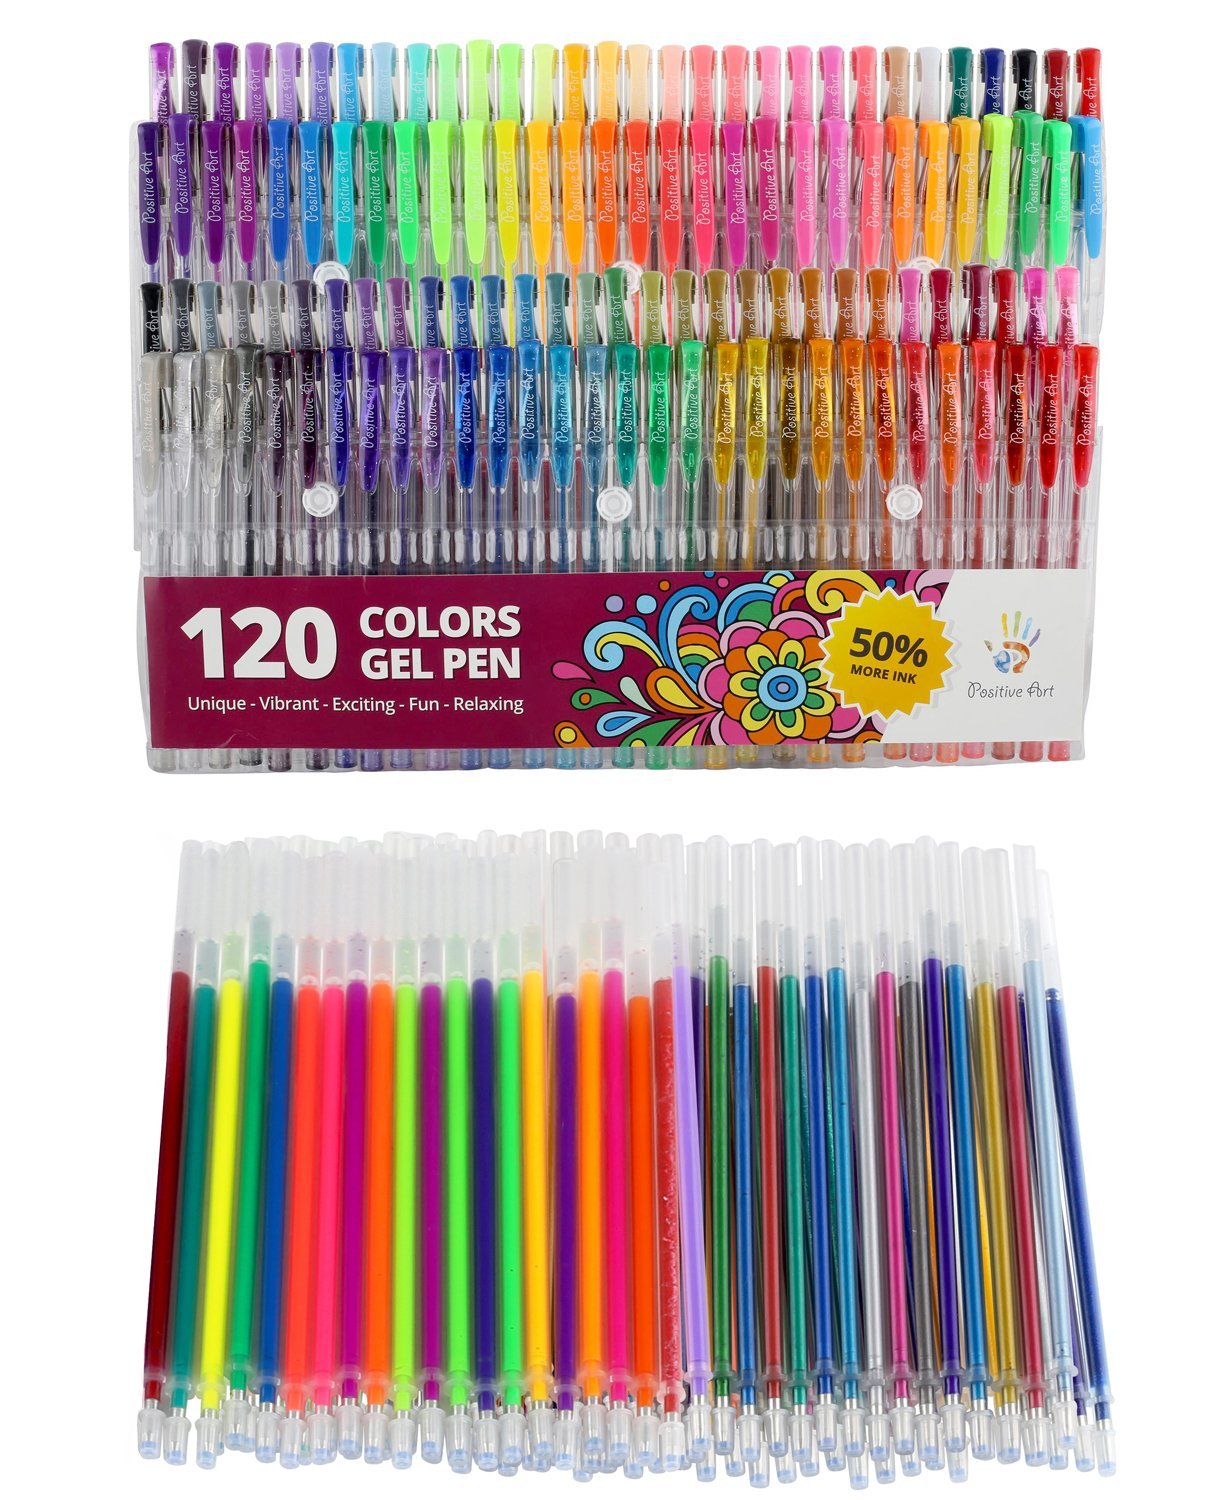 Gel Pens Set 120 Unique Colors Plus 120 Gel Pen Refills Total Of 240 Colors, For Adult Coloring Book Drawing Drawing Doodling, Glitter Metallic Pastel and More - 50% More Ink! - Excellent gift idea